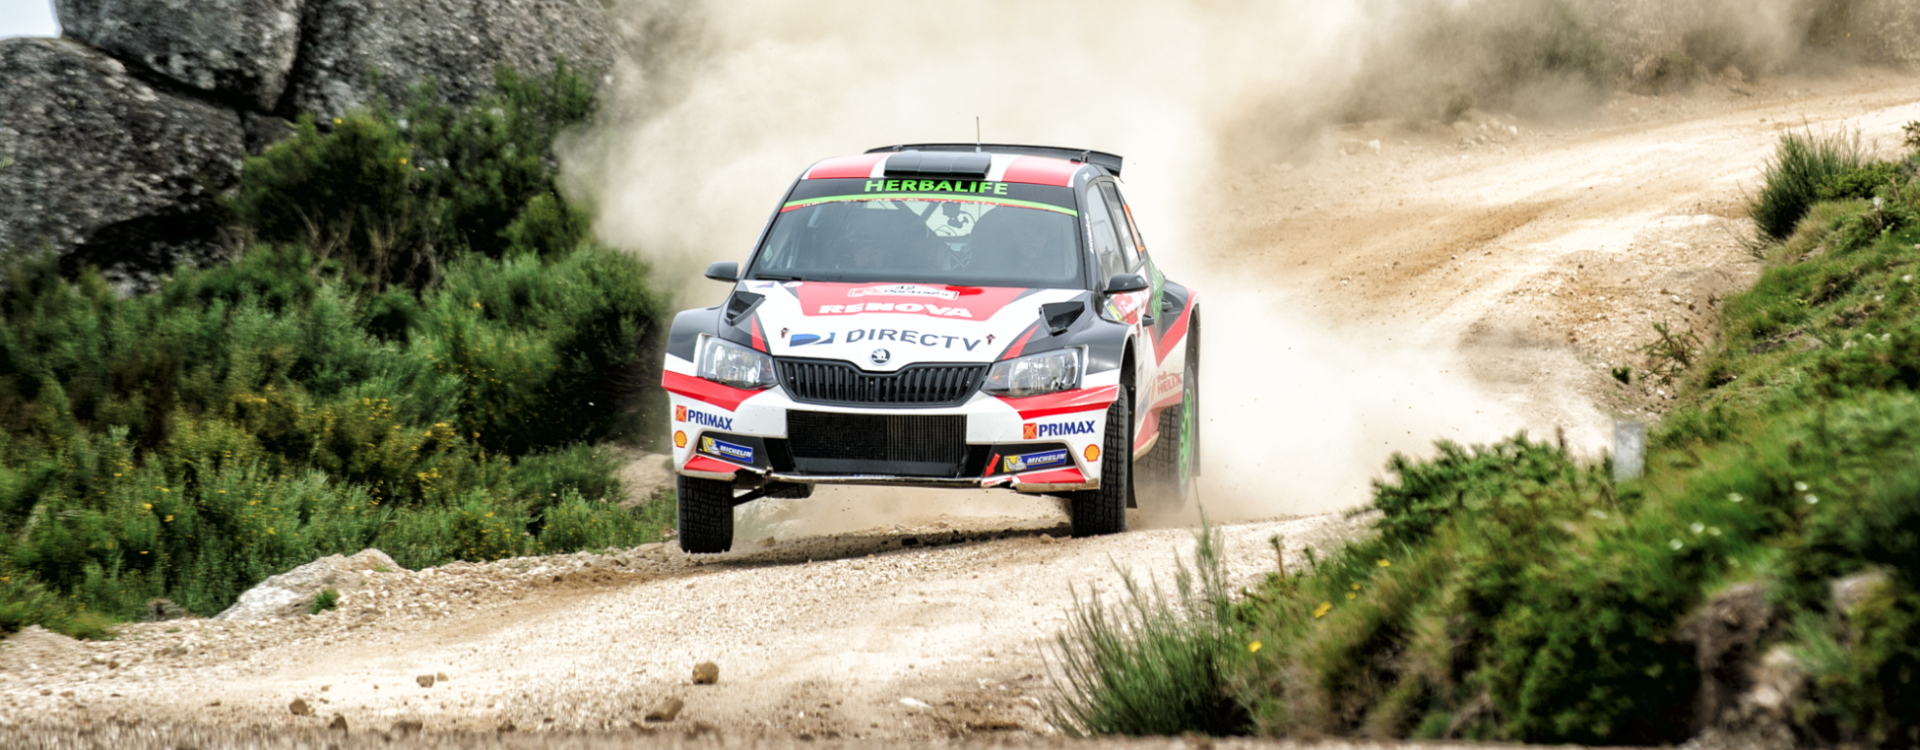 ŠKODA Fabia R5 cars dominate the WRC2 leaderboard at the Rally de Portugal